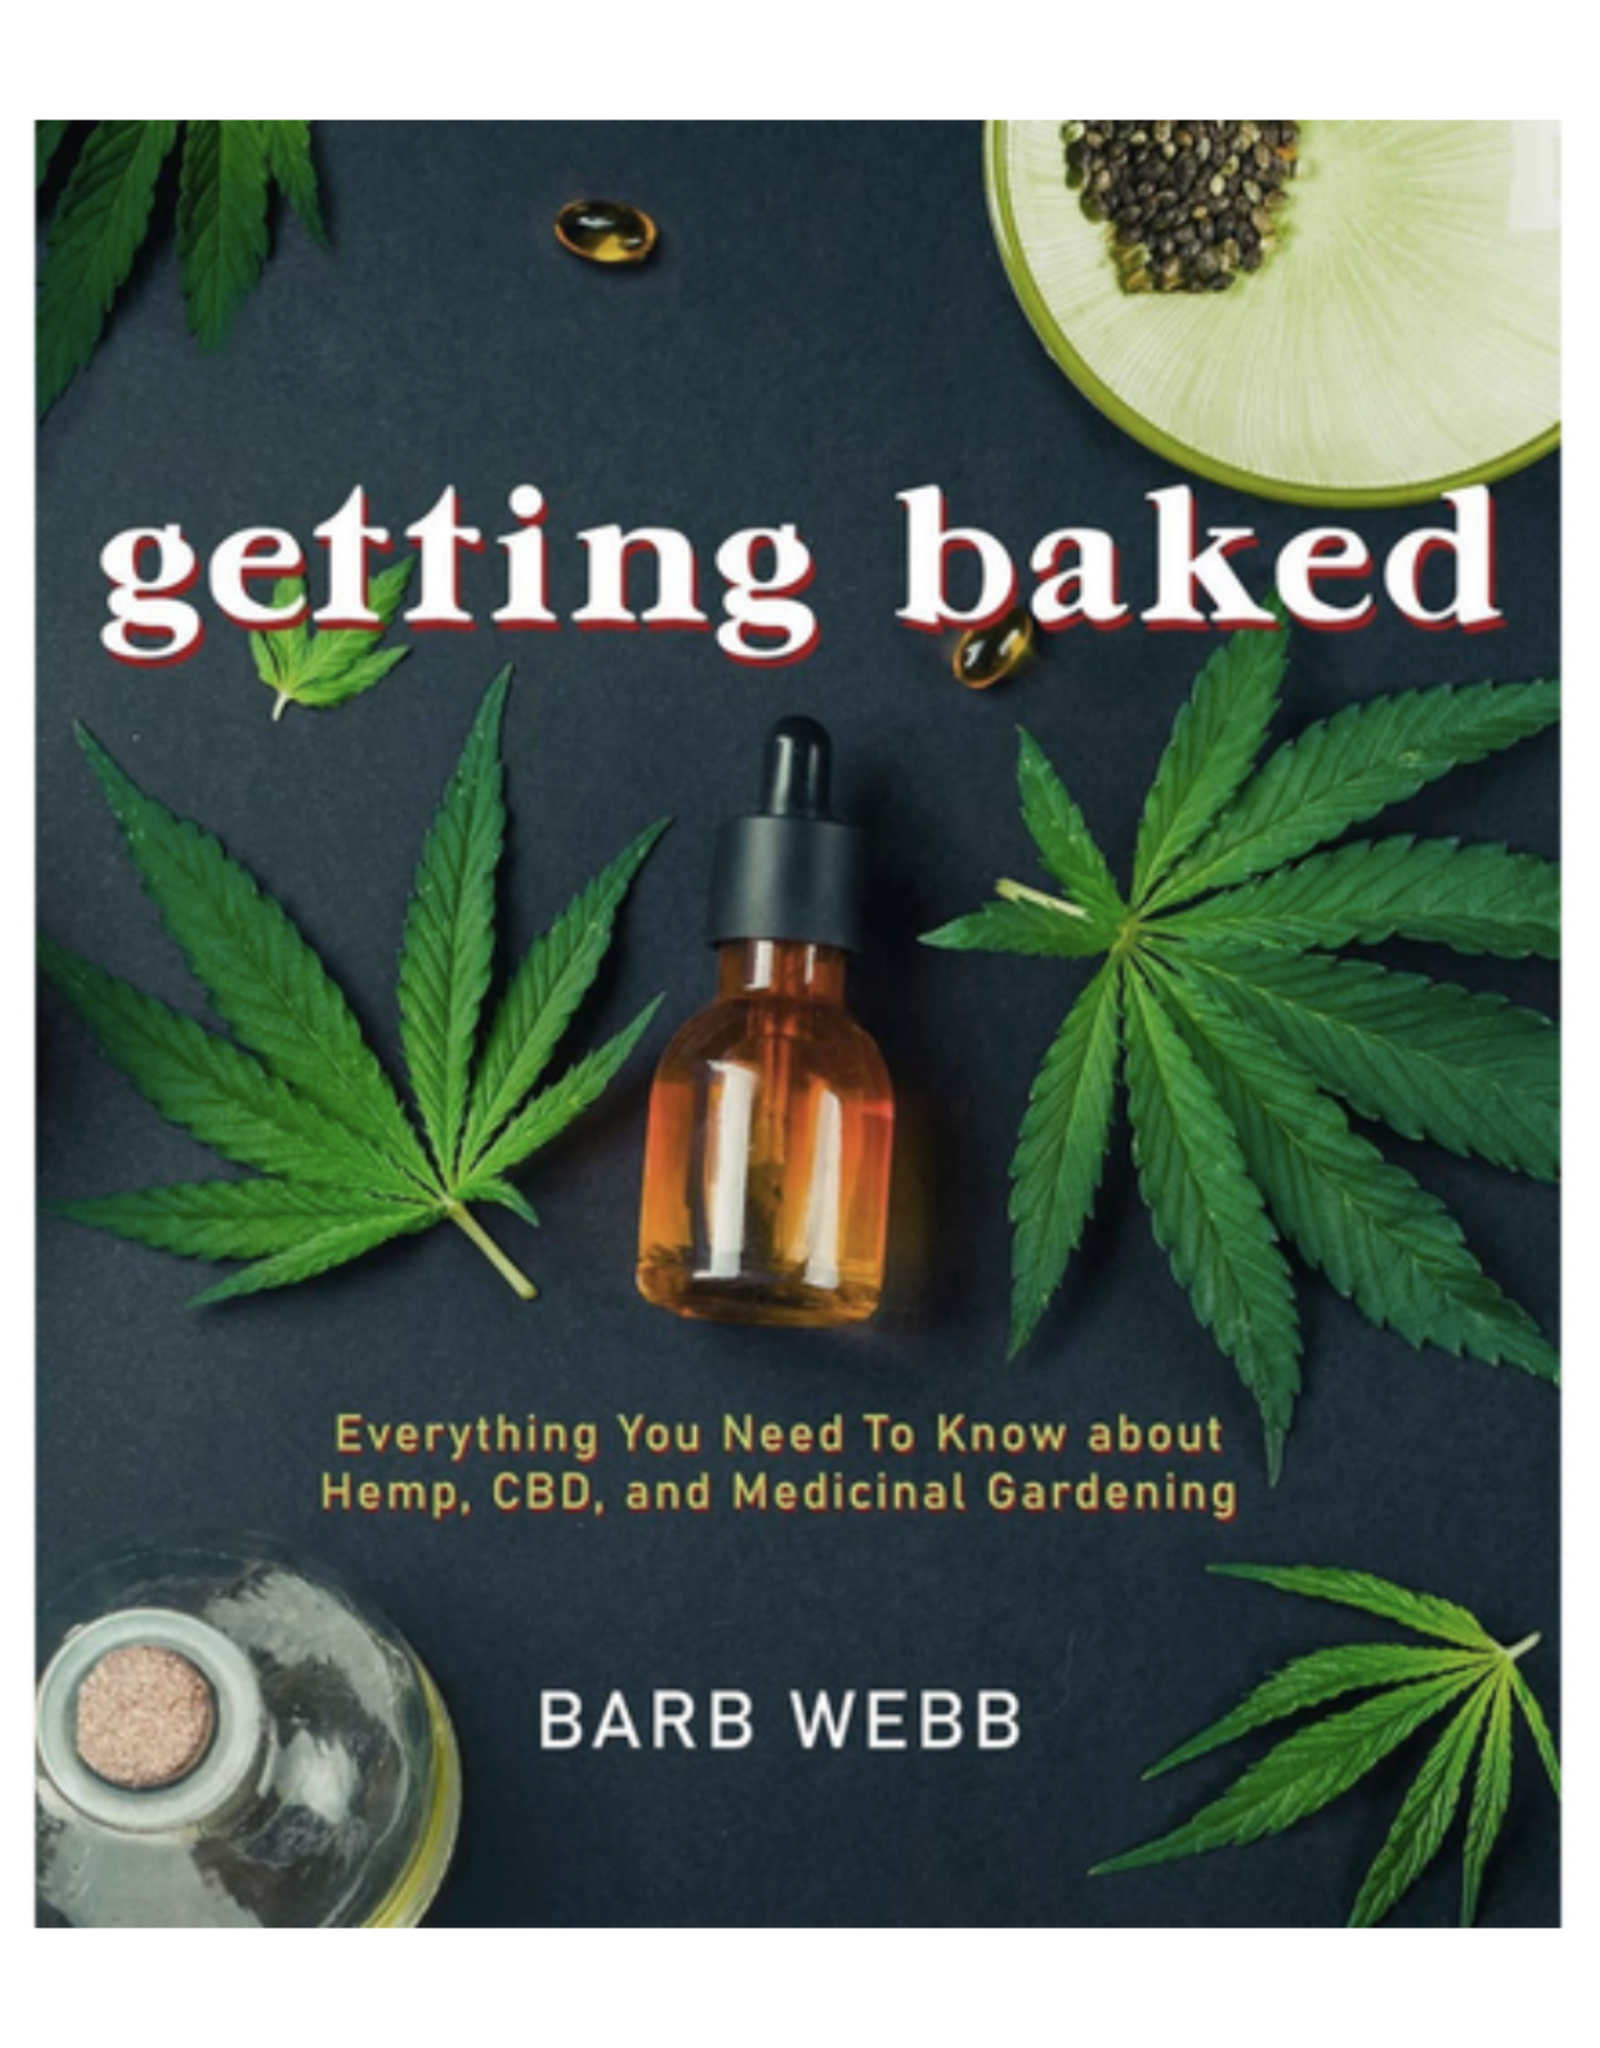 Getting Baked: Everything You Need to Know about Hemp, CBD, and Medicinal Gardening by Barb Webb